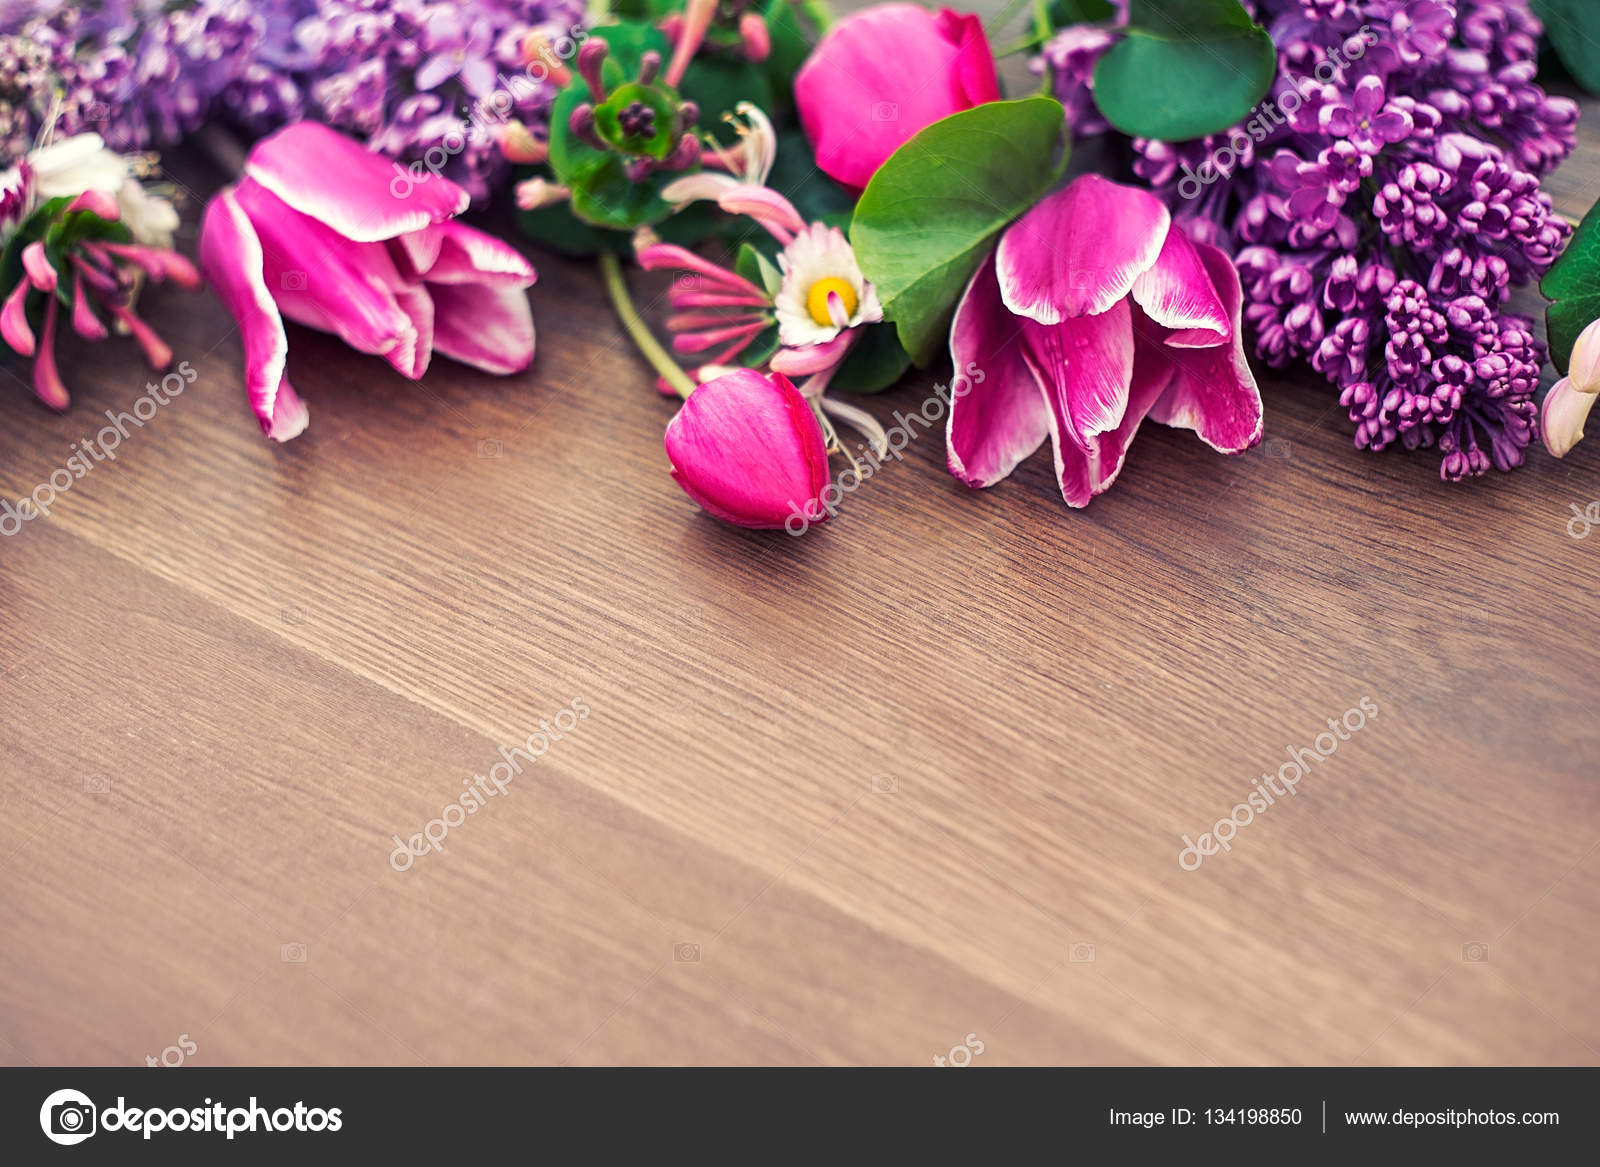 Beautiful Flowers Lying On A Wooden Background A Spring Gift To